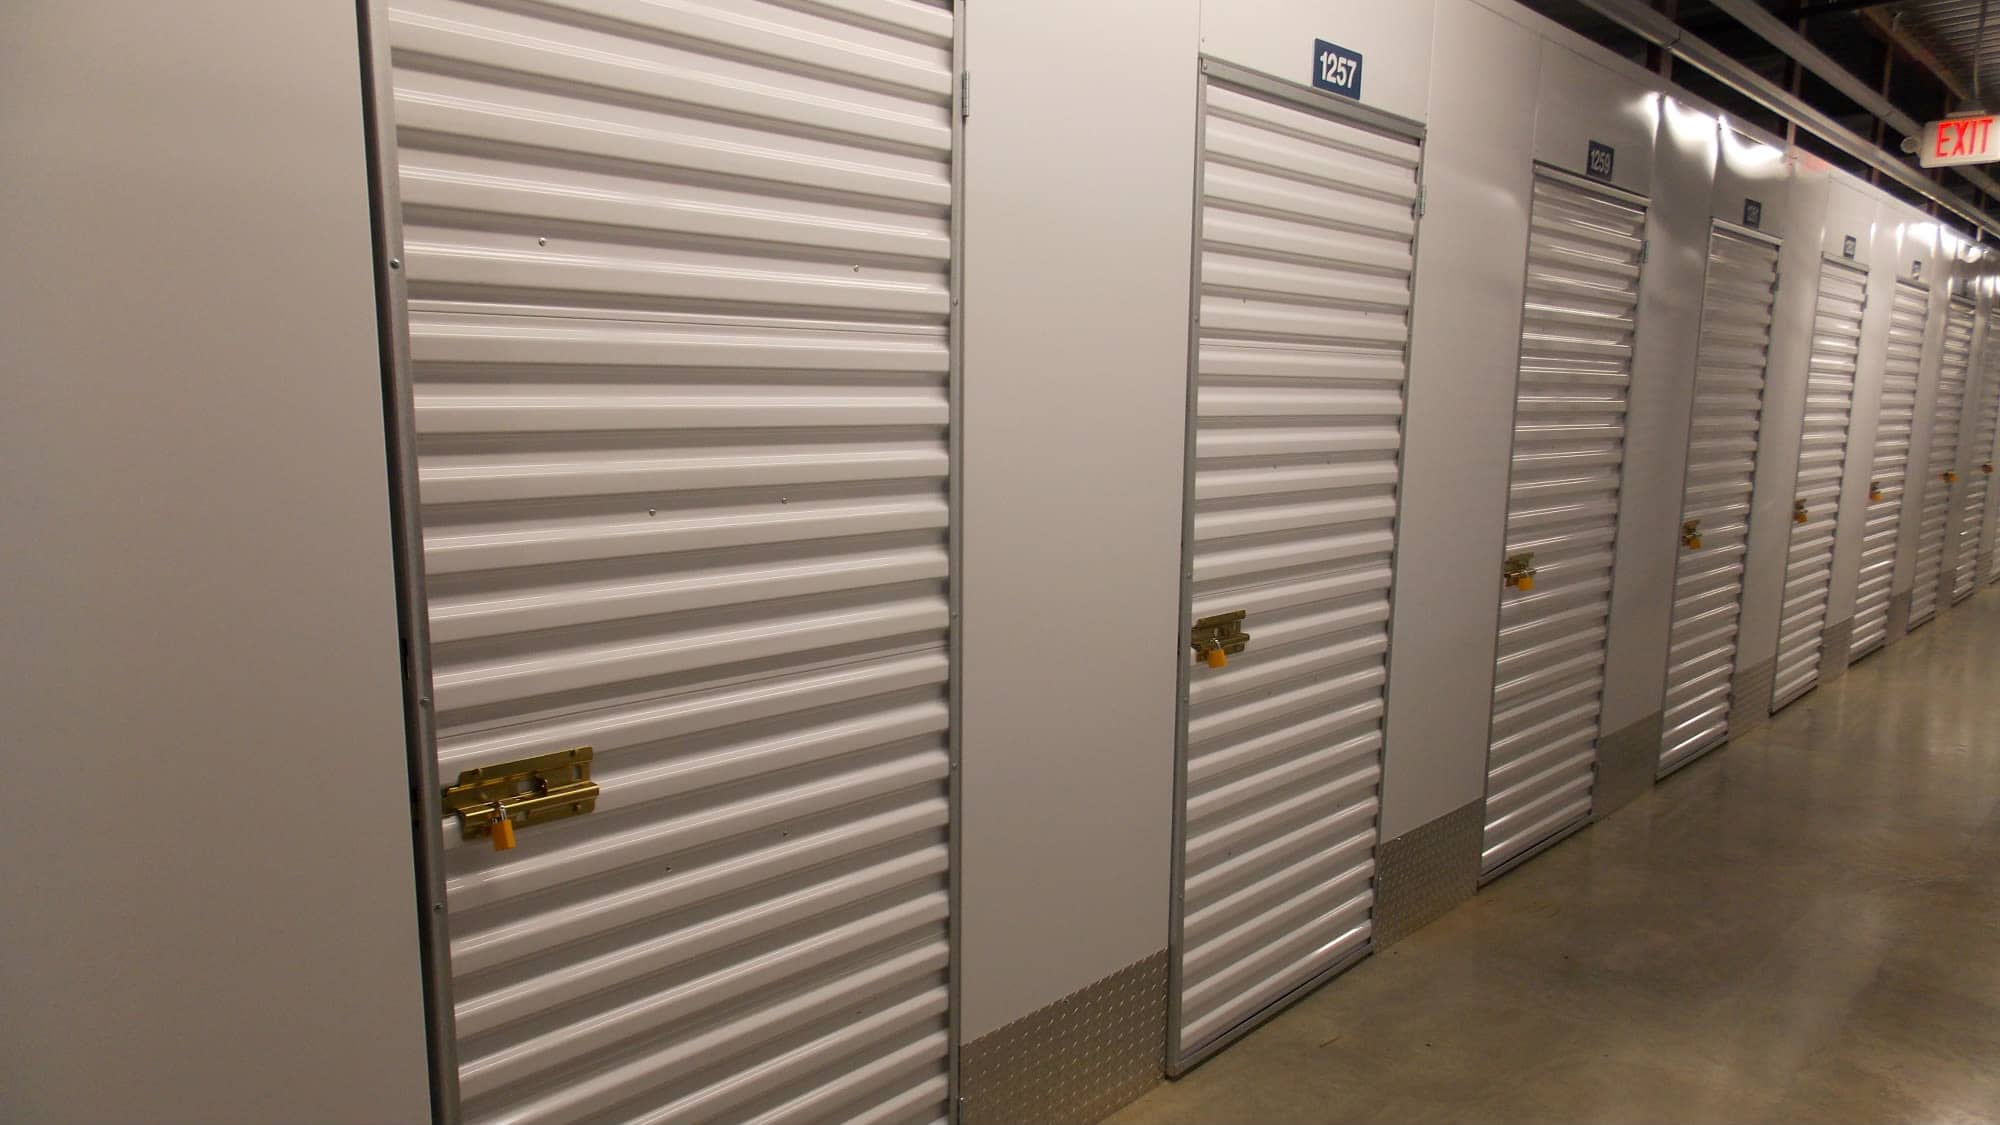 Locker units at Self Storage Plus in Fredericksburg, Virginia